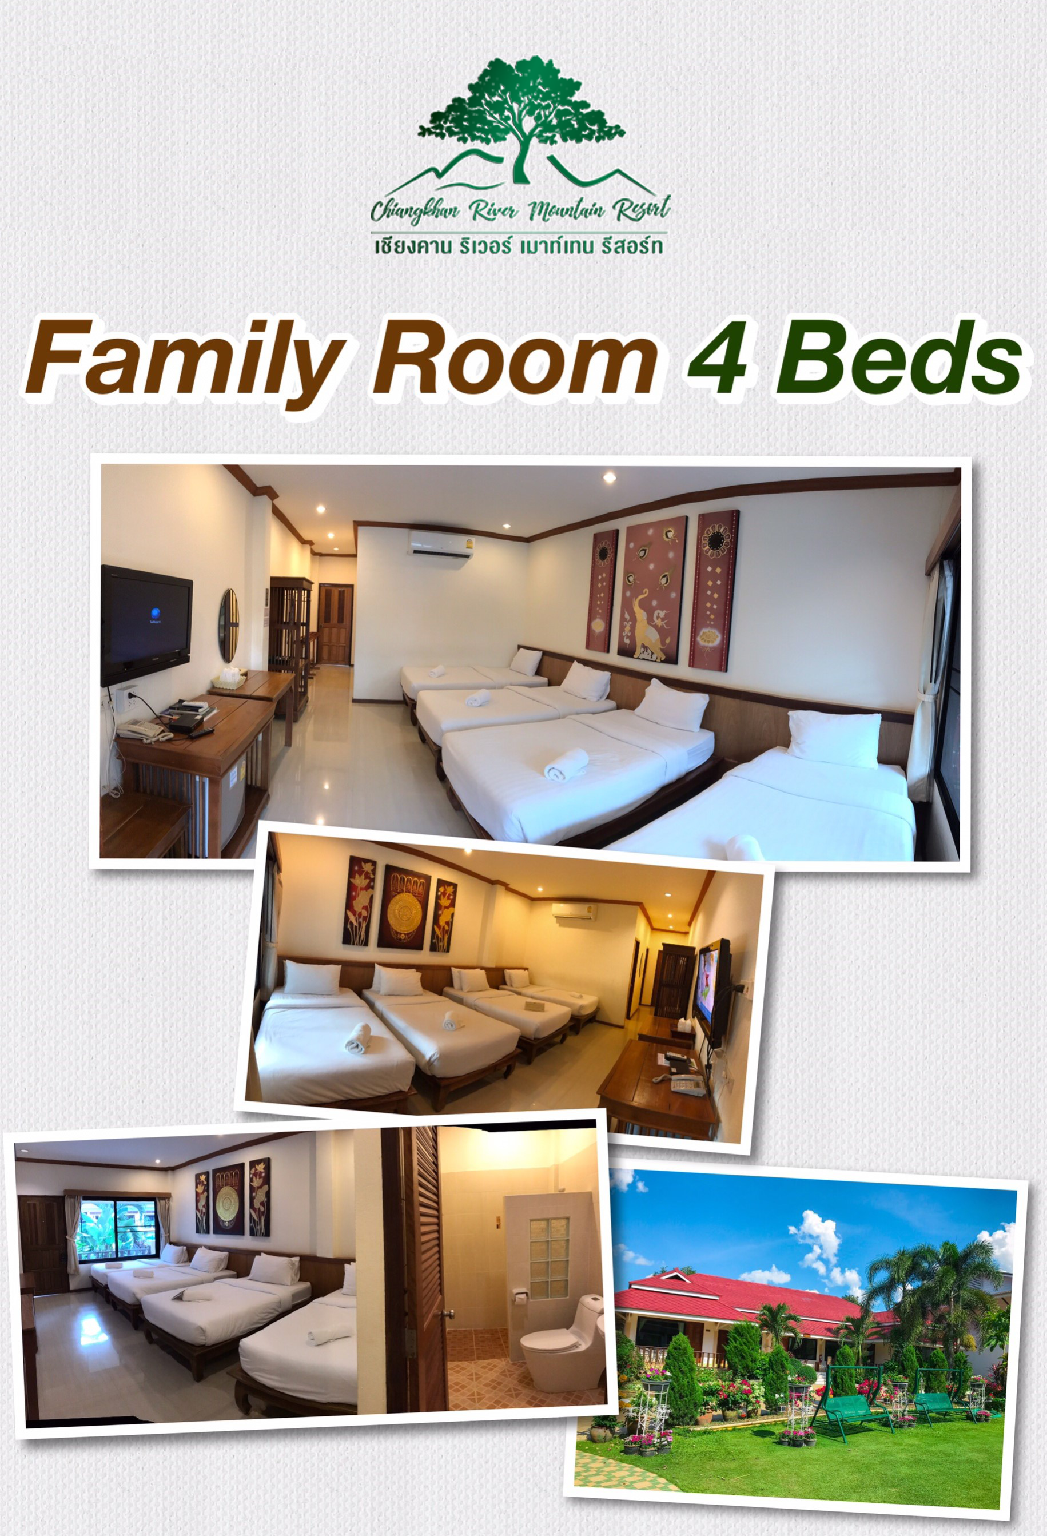 Family Room 4 Beds